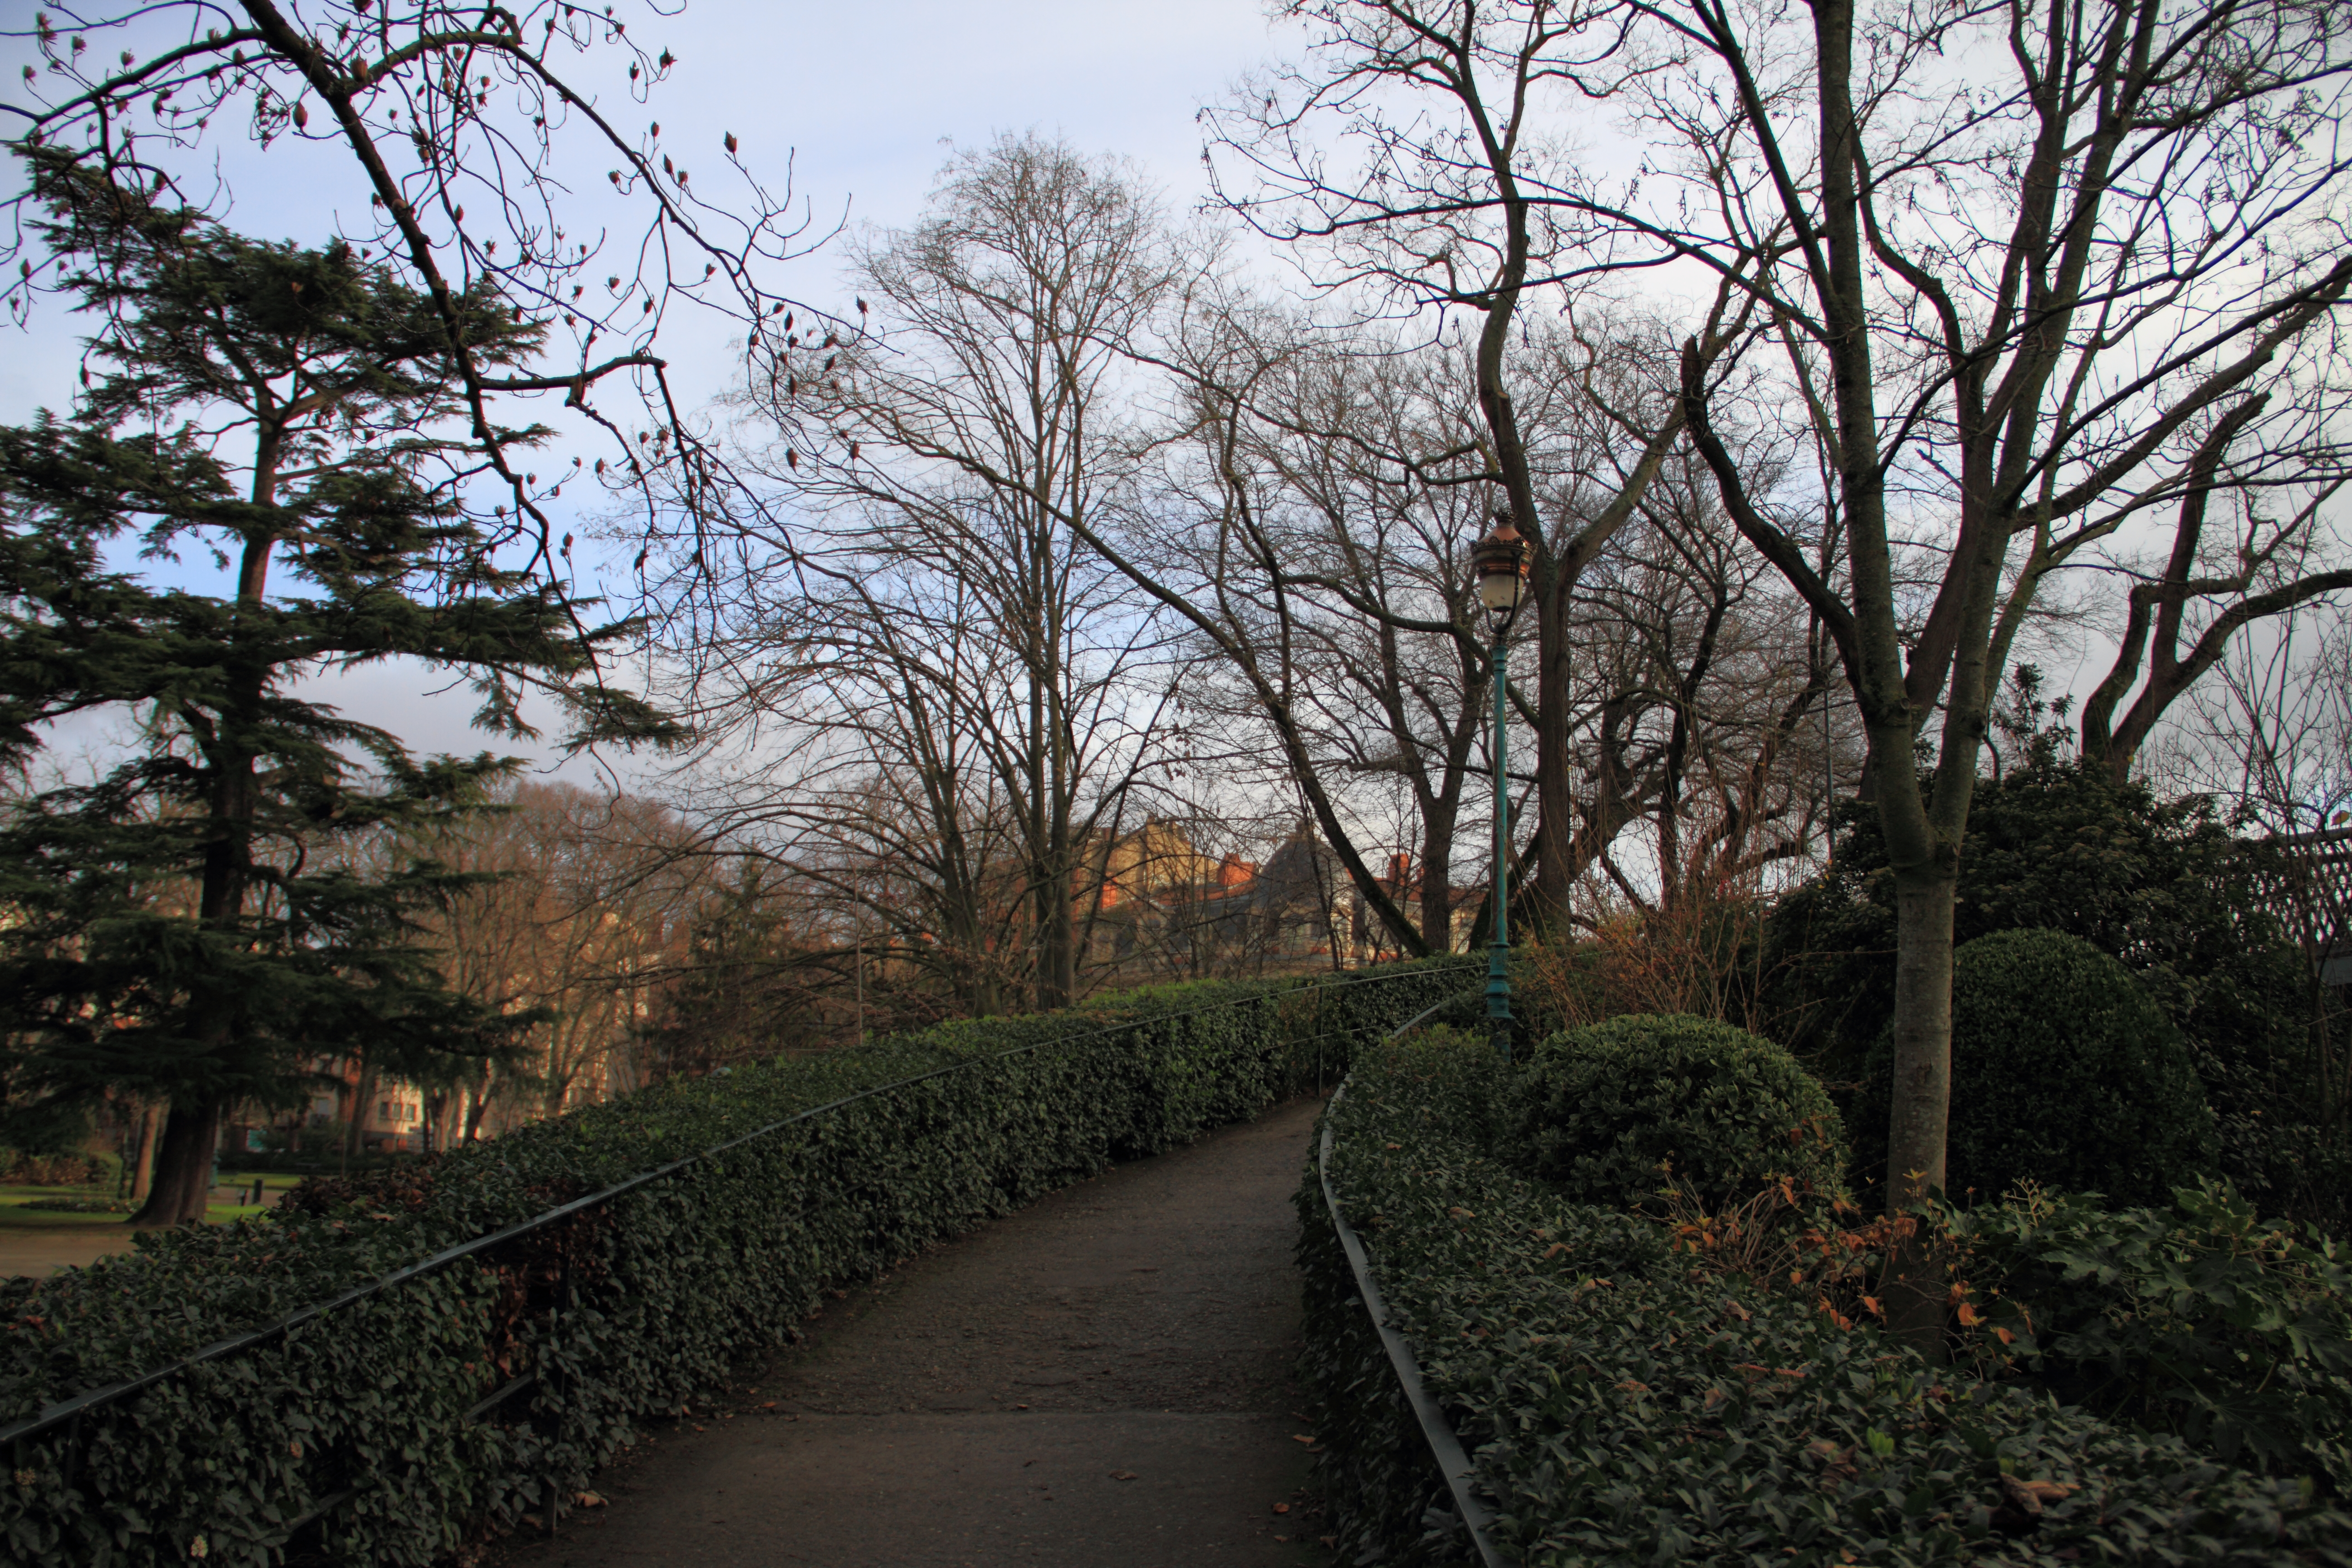 File:Jardin du Grand Rond, Toulouse 02.JPG - Wikimedia Commons